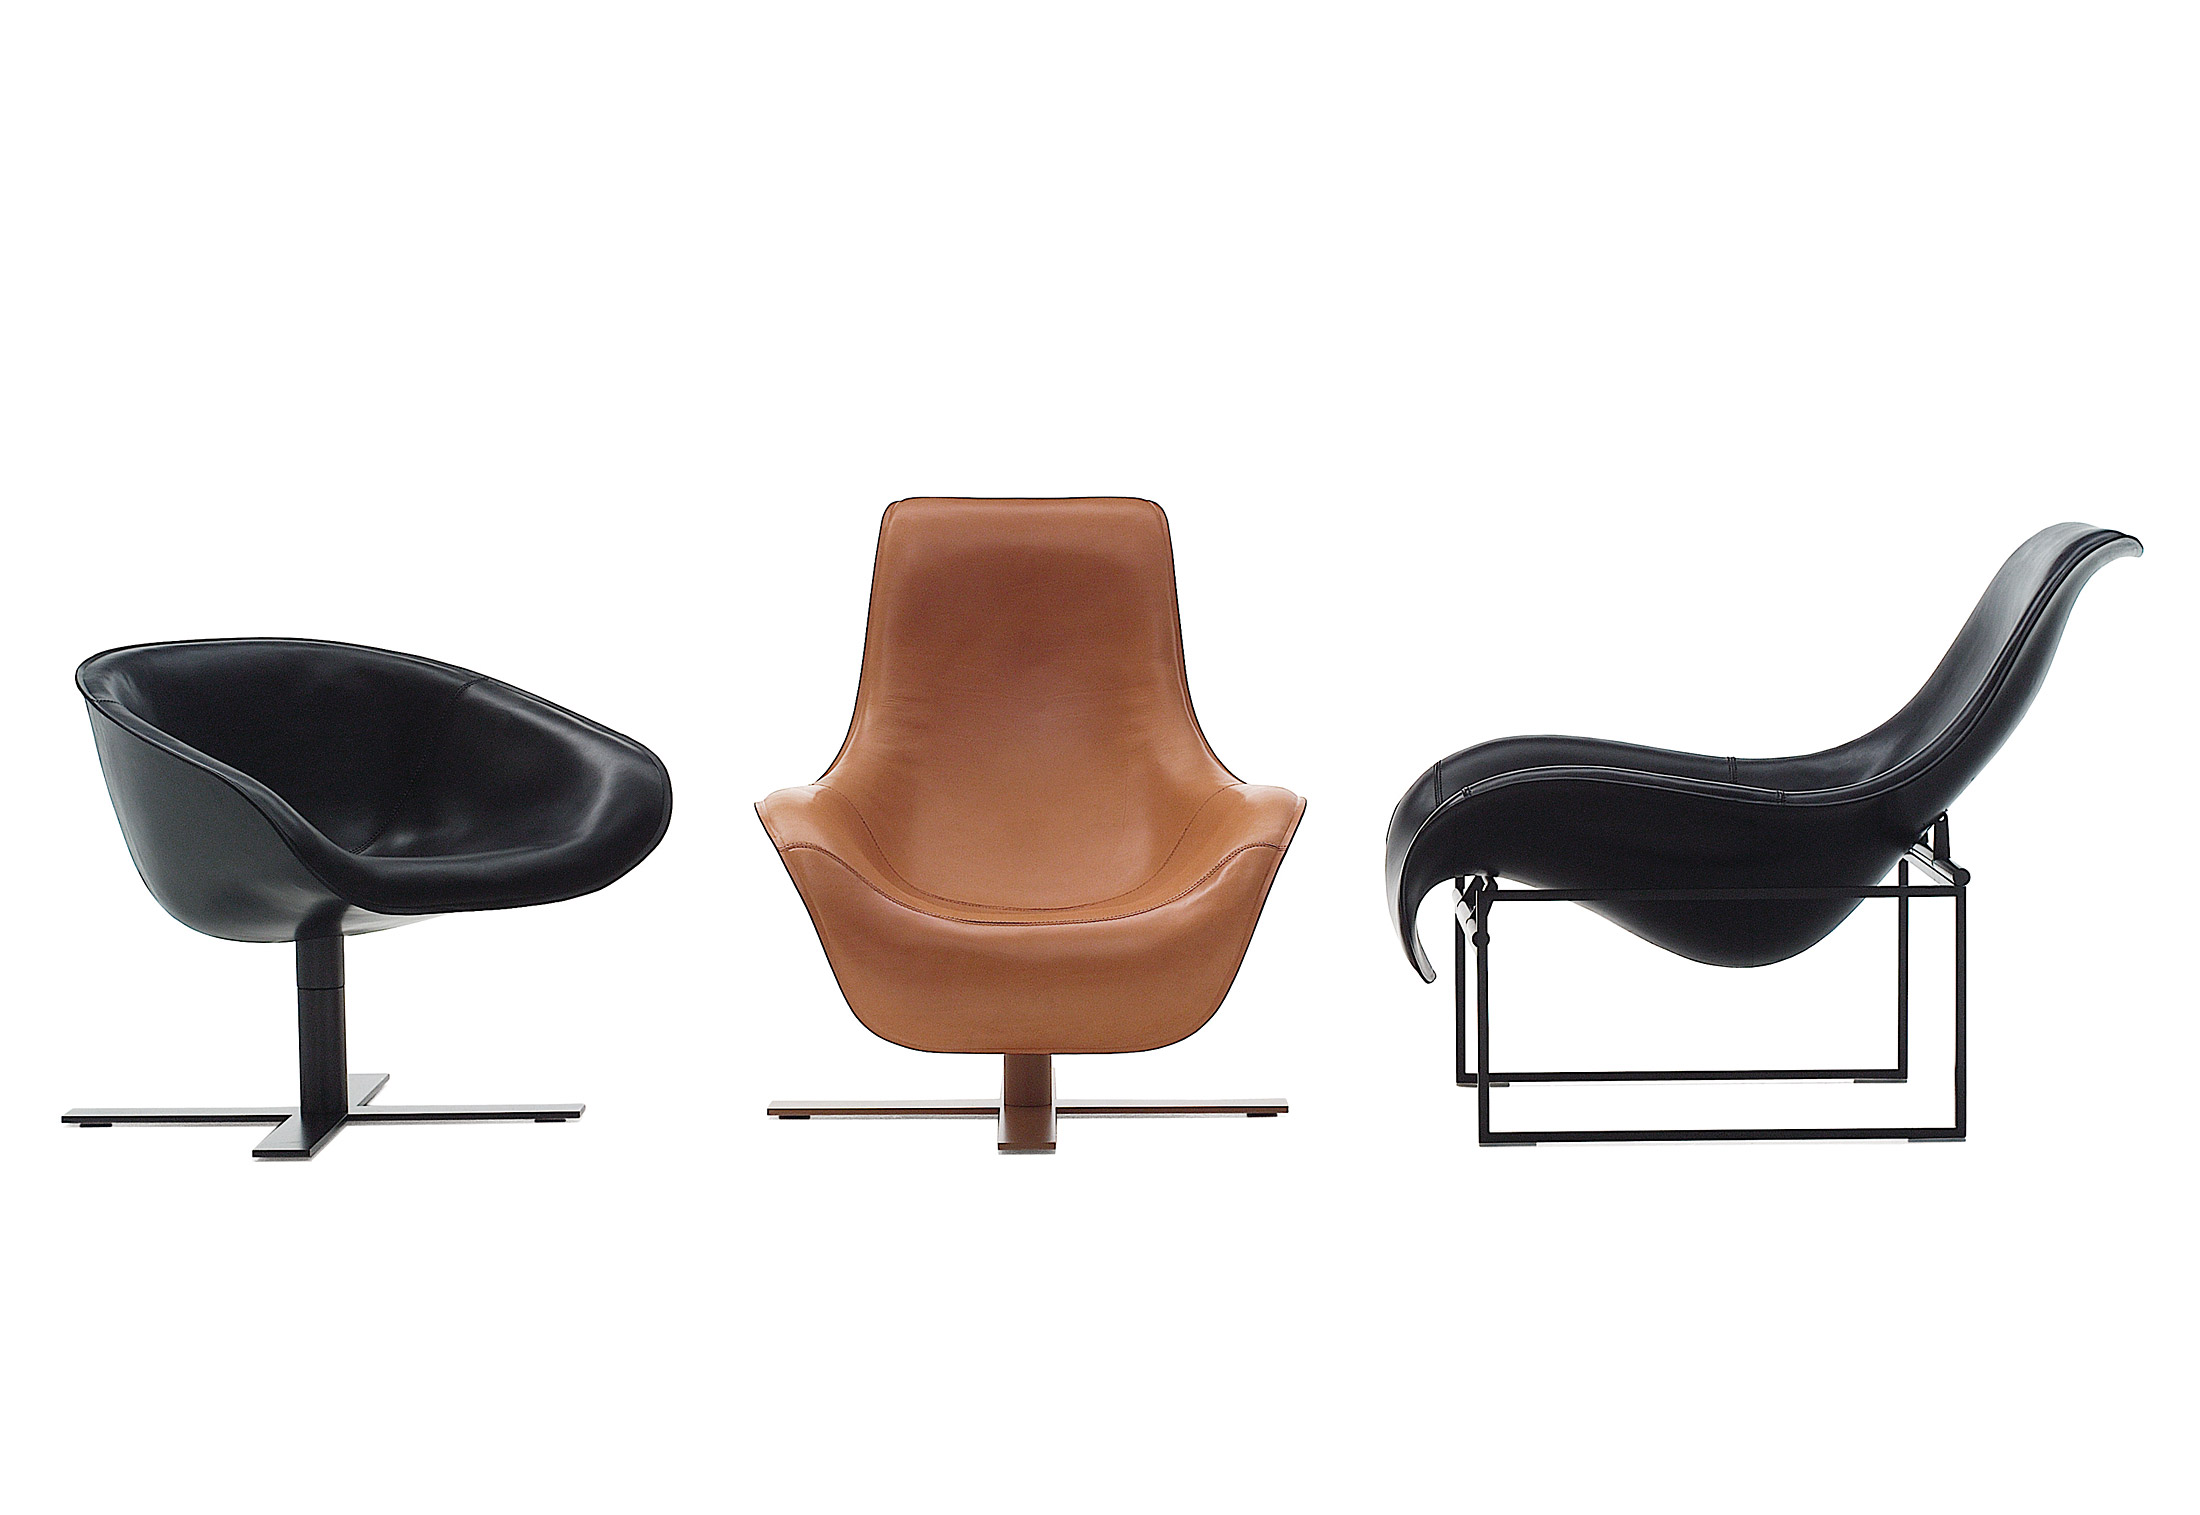 revolving easy chair unfinished wood dining chairs mart armchair by b andb italia stylepark